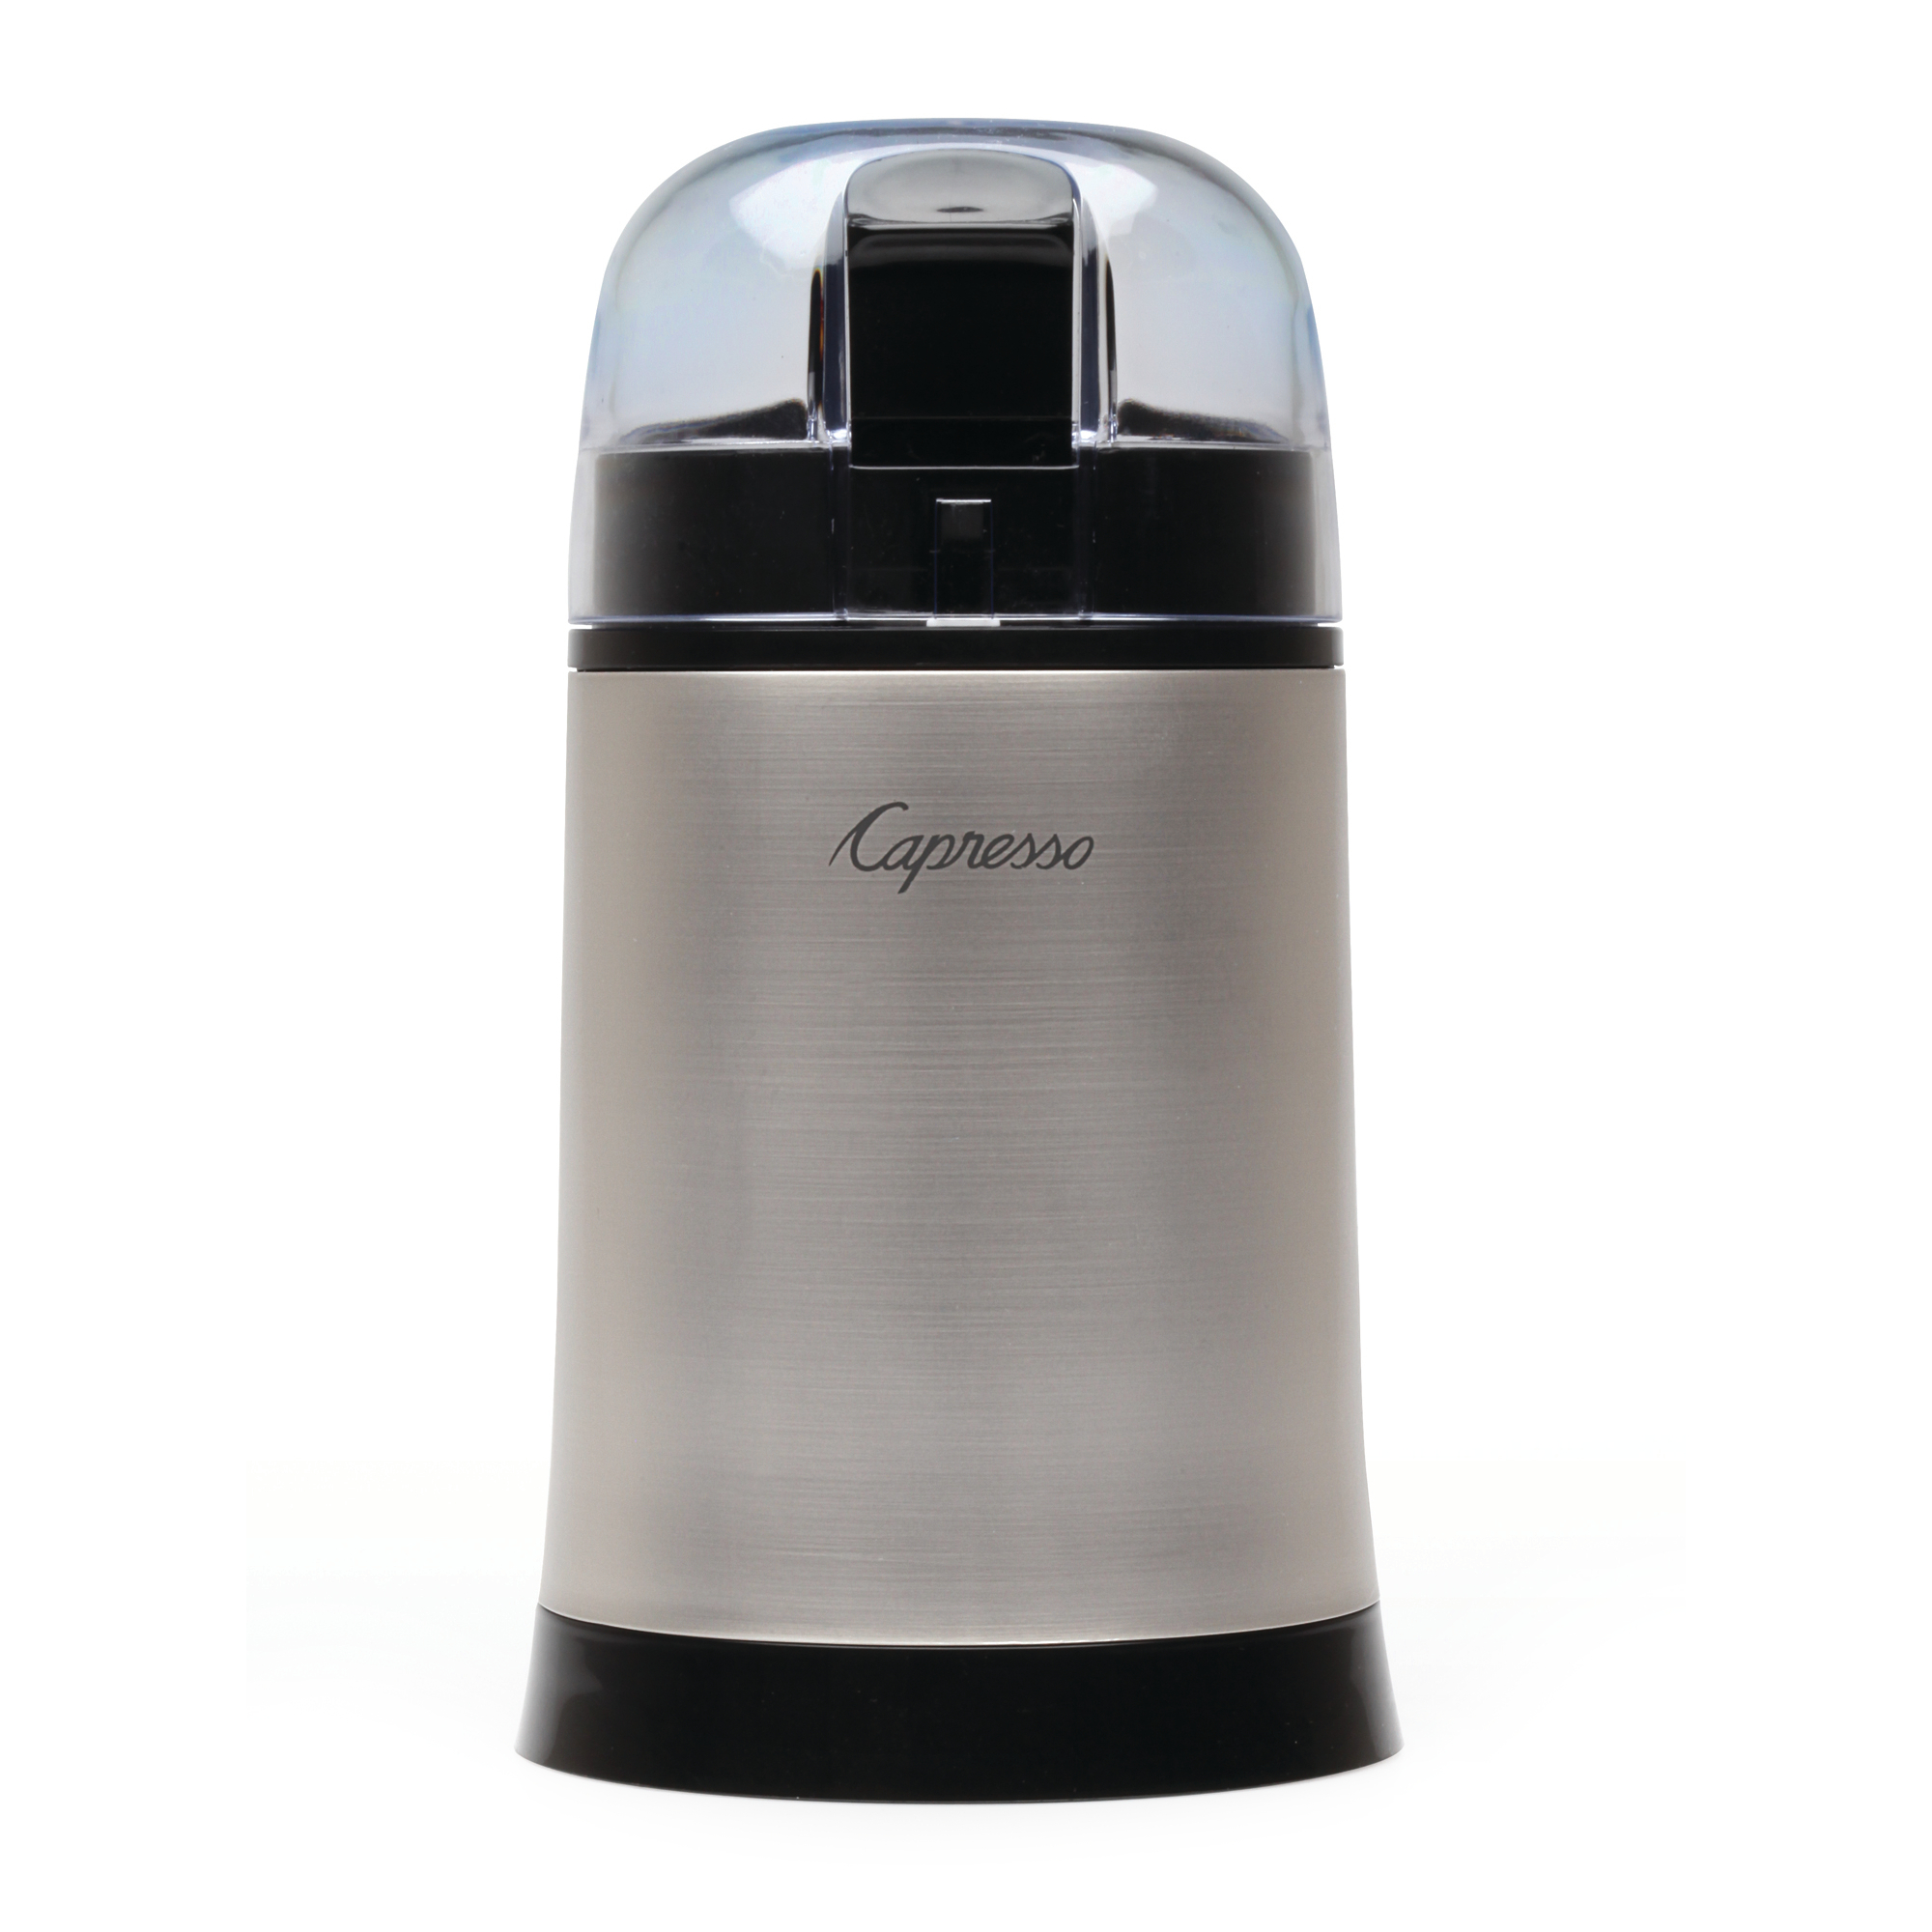 Capresso Stainless Steel Cool Grind Blade Coffee Grinder